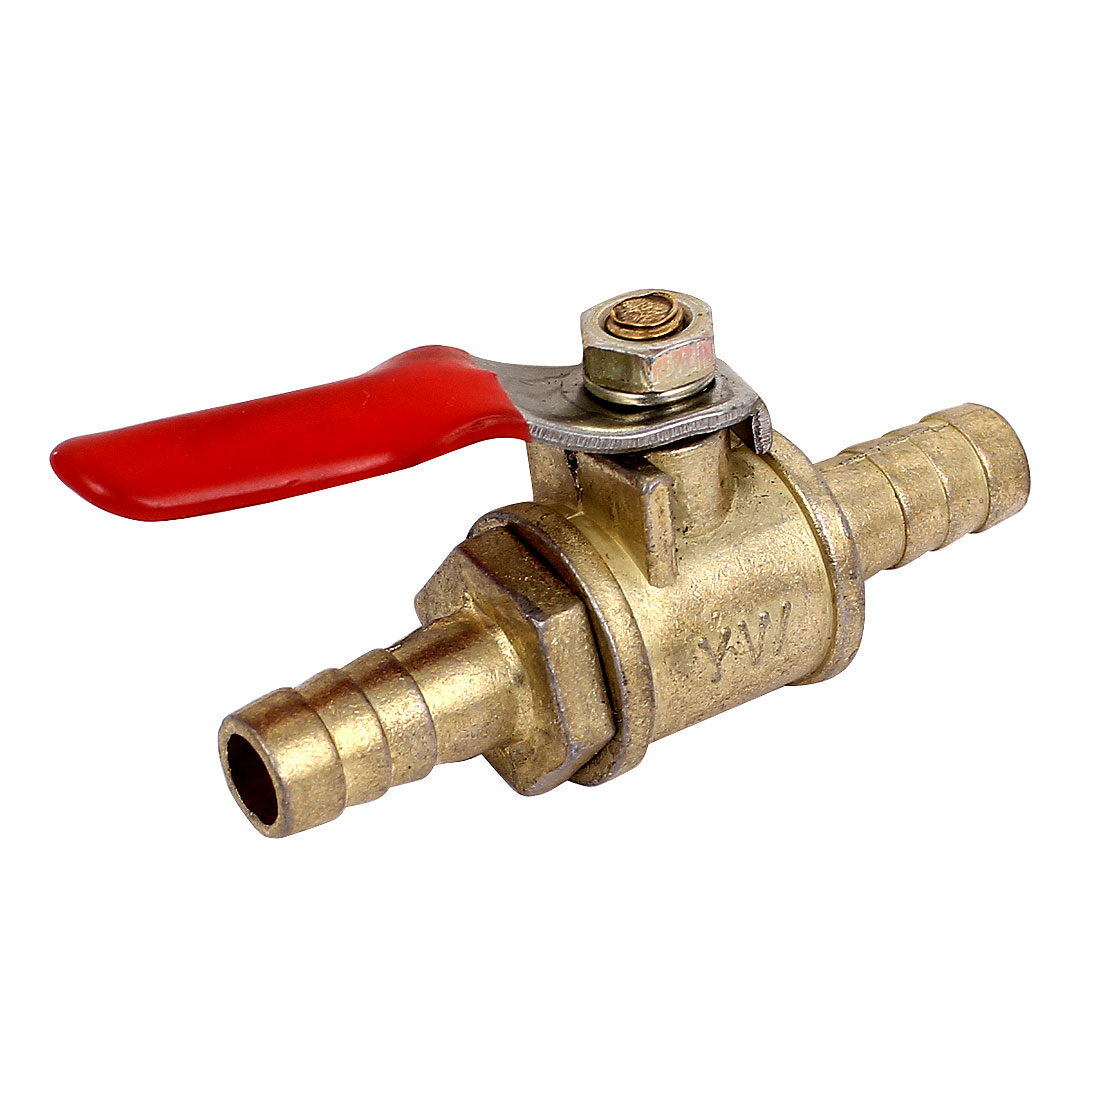 "8mm 5/16"" Hose Barb Inline Brass Water Oil Air Gas Fuel Line Shutoff Ball Valve"